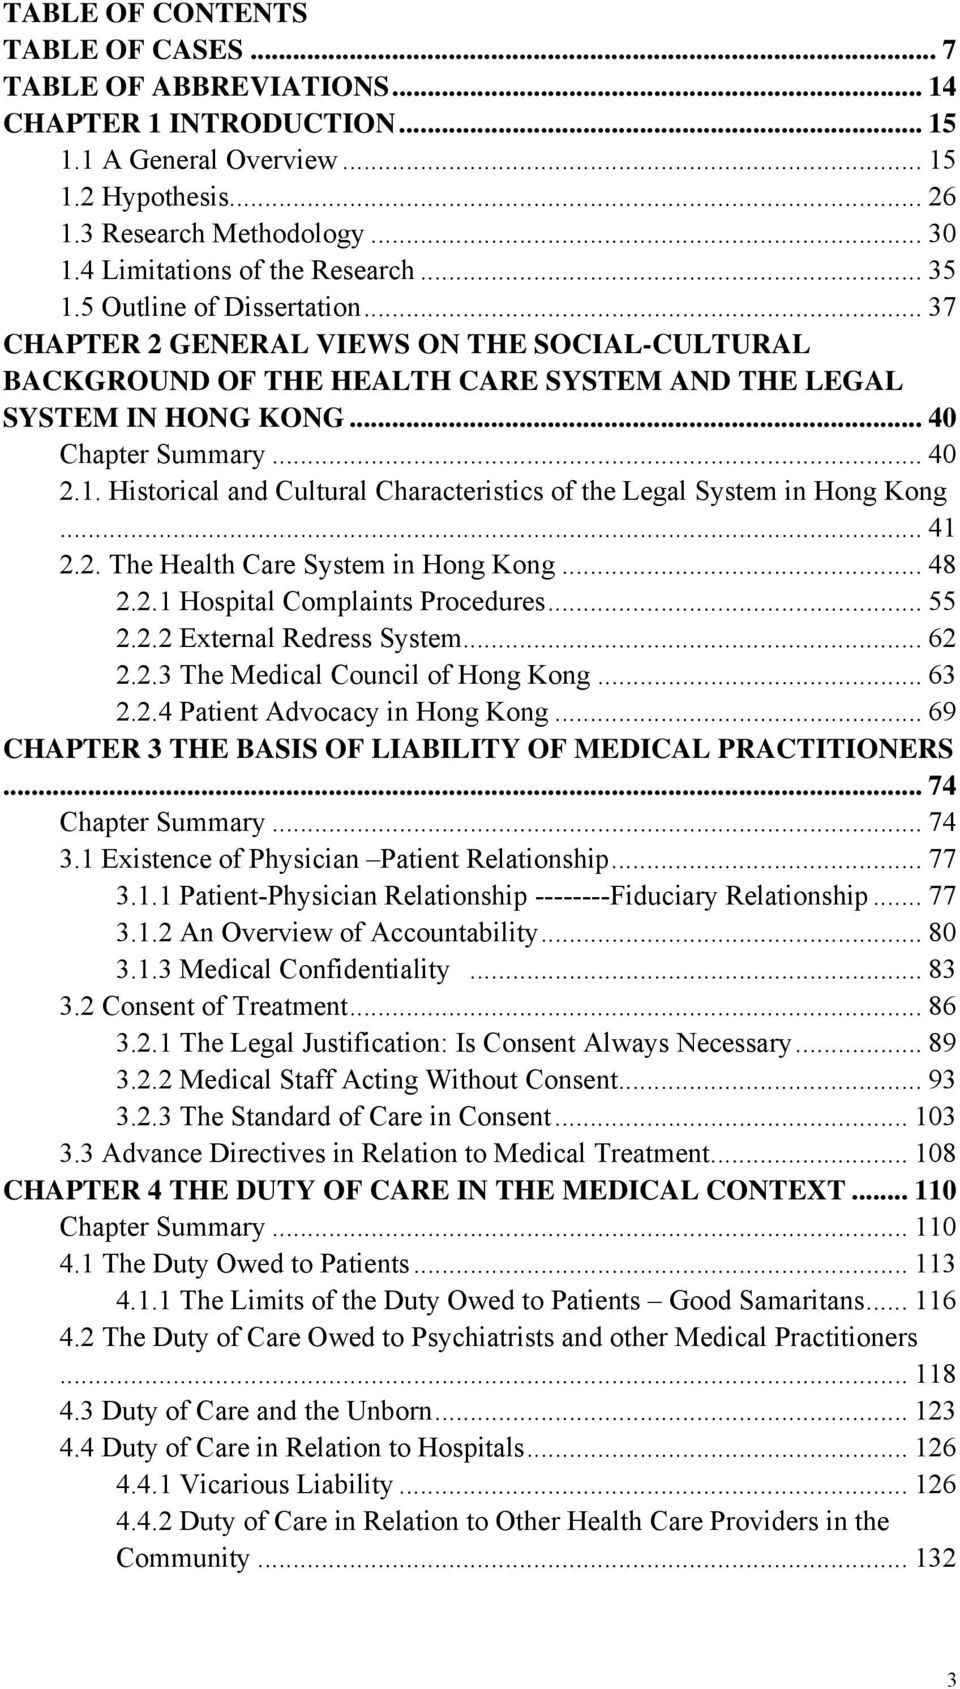 .. 40 Chapter Summary... 40 2.1. Historical and Cultural Characteristics of the Legal System in Hong Kong... 41 2.2. The Health Care System in Hong Kong... 48 2.2.1 Hospital Complaints Procedures.